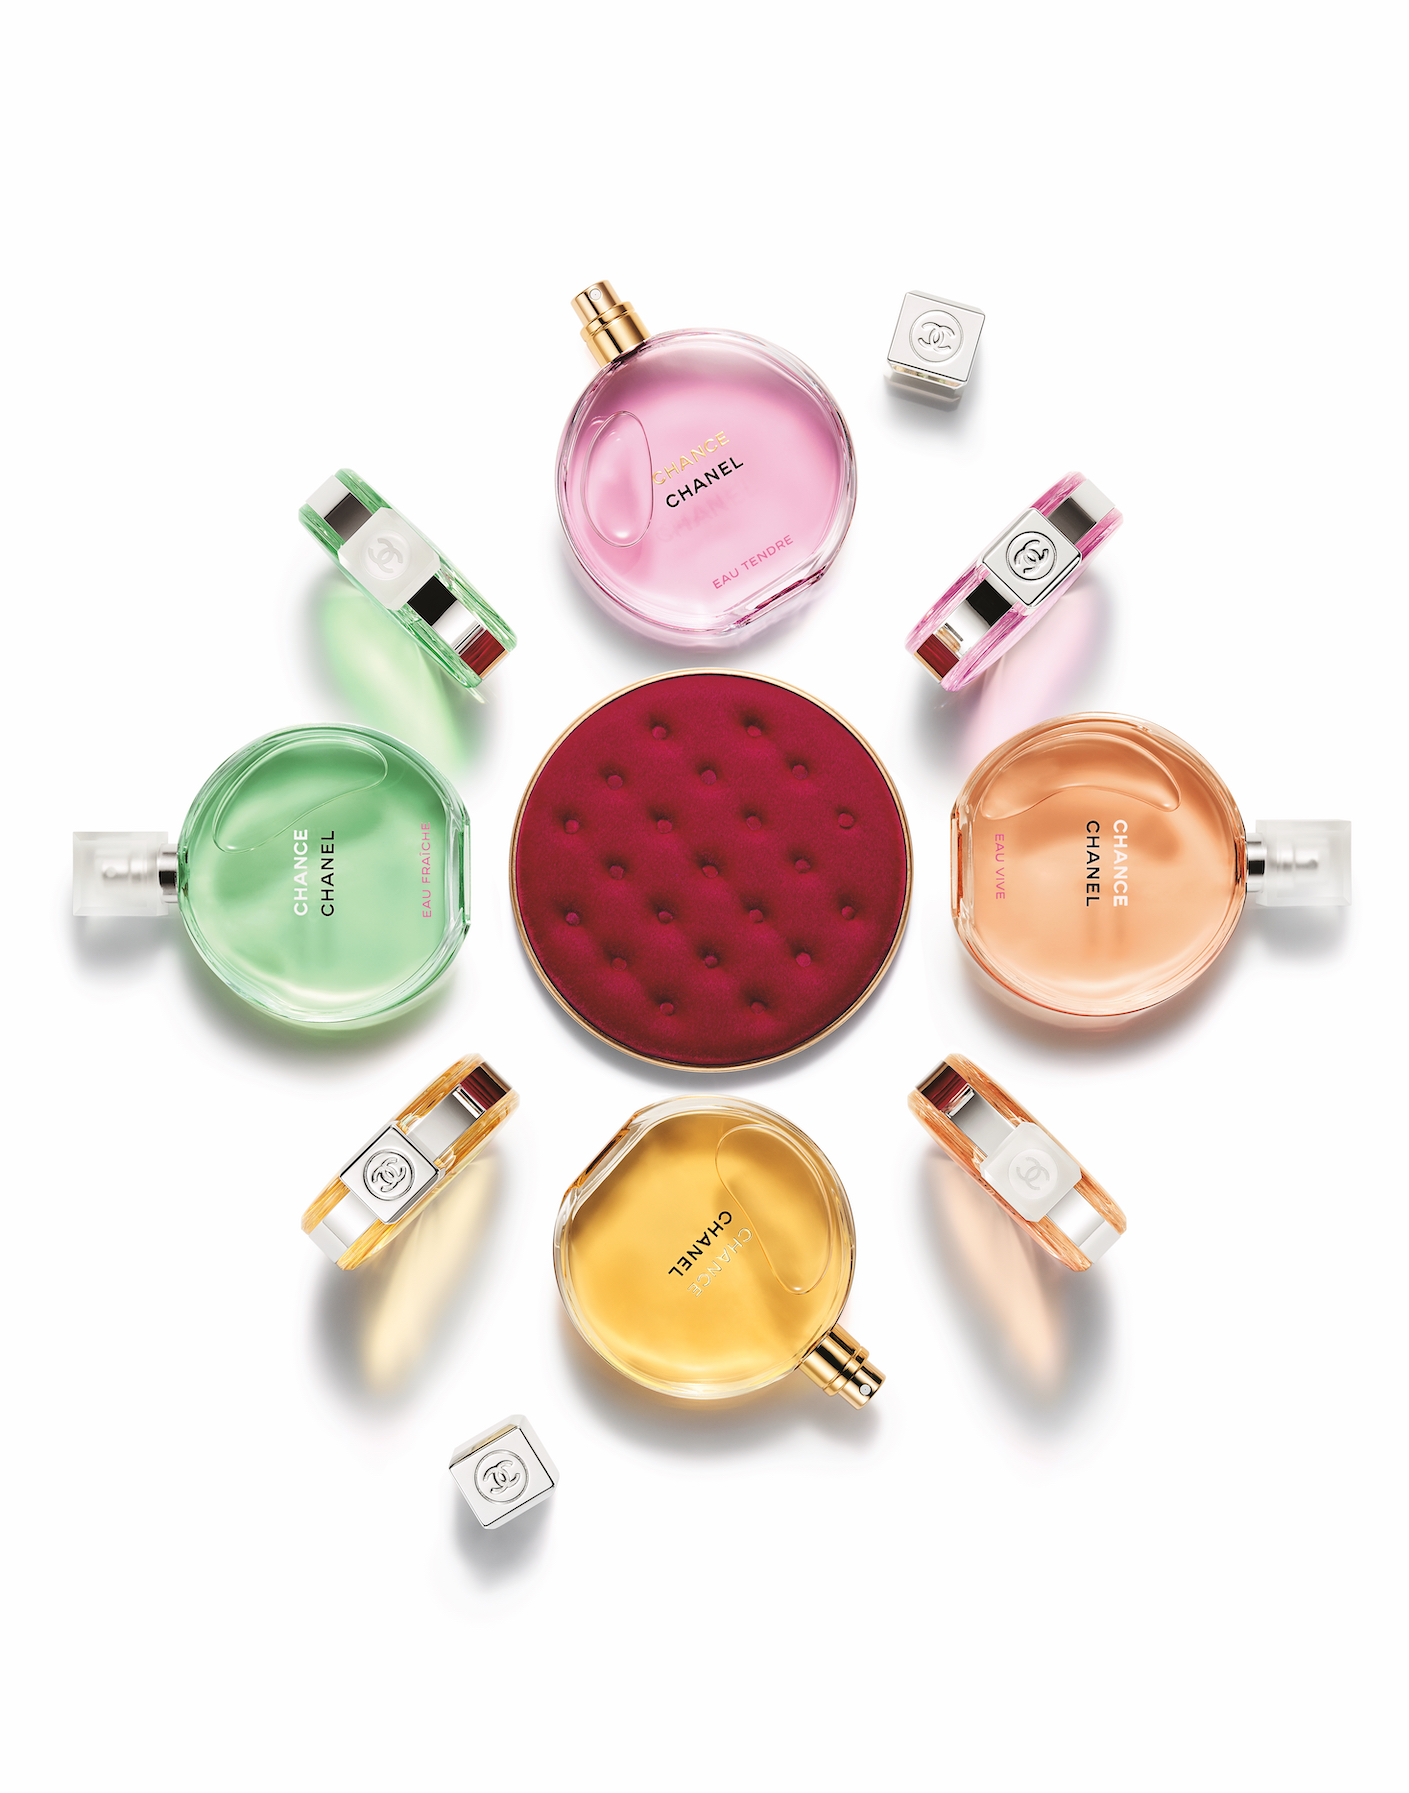 5 Things Worth Knowing About The Chanel Chance Perfume Savior Flair